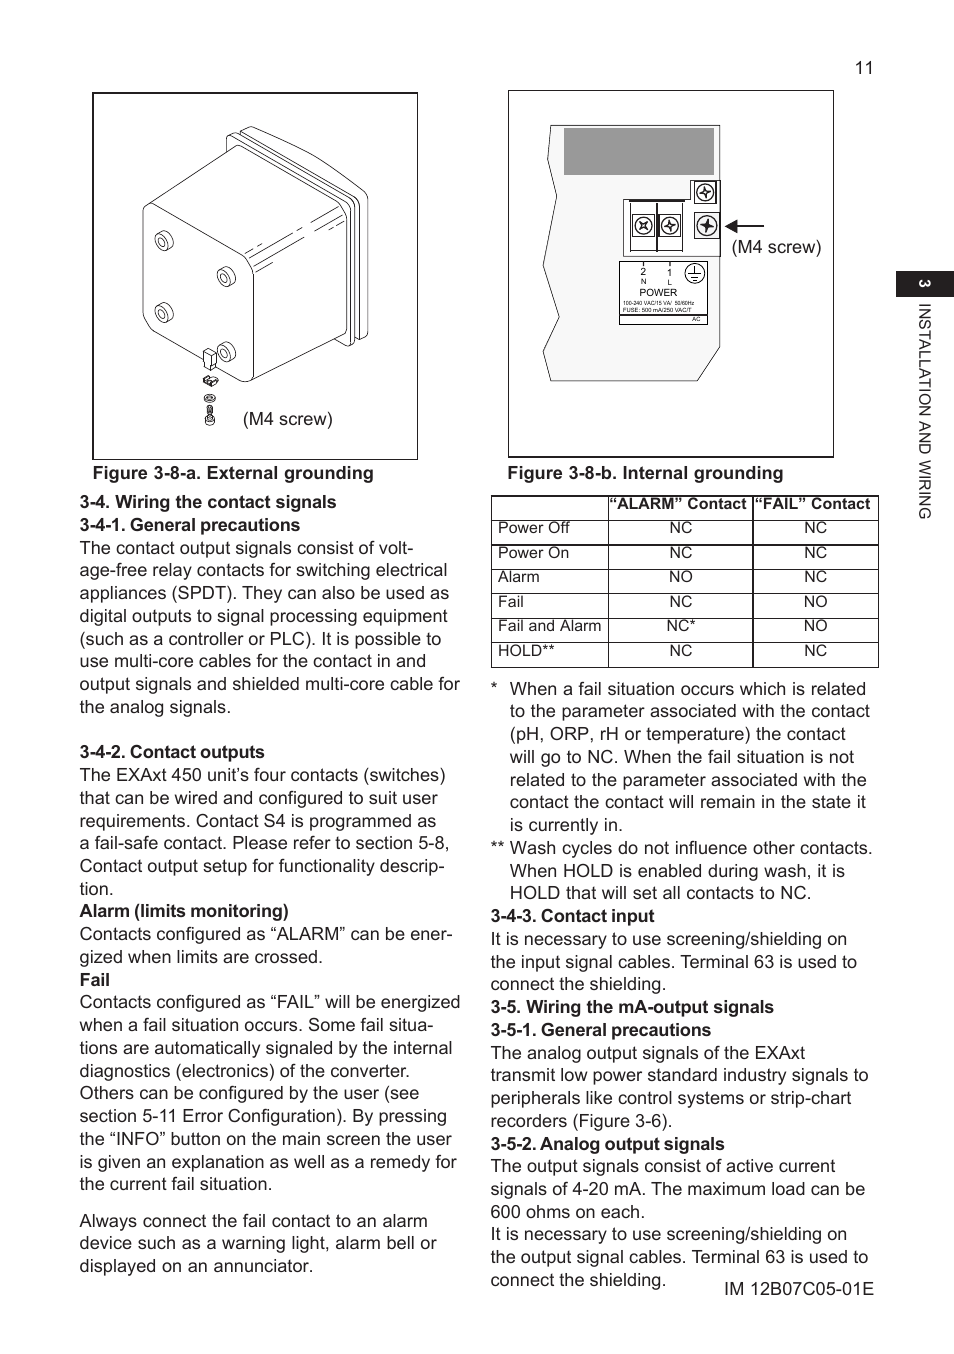 4 Wiring The Contact Signals 1 General Precautions 2 Plc Output Control Relay Free Image About Diagram And Outputs Yokogawa Exaxt Ph450 Wire Analyzer For Ph Orp User Manual Page 19